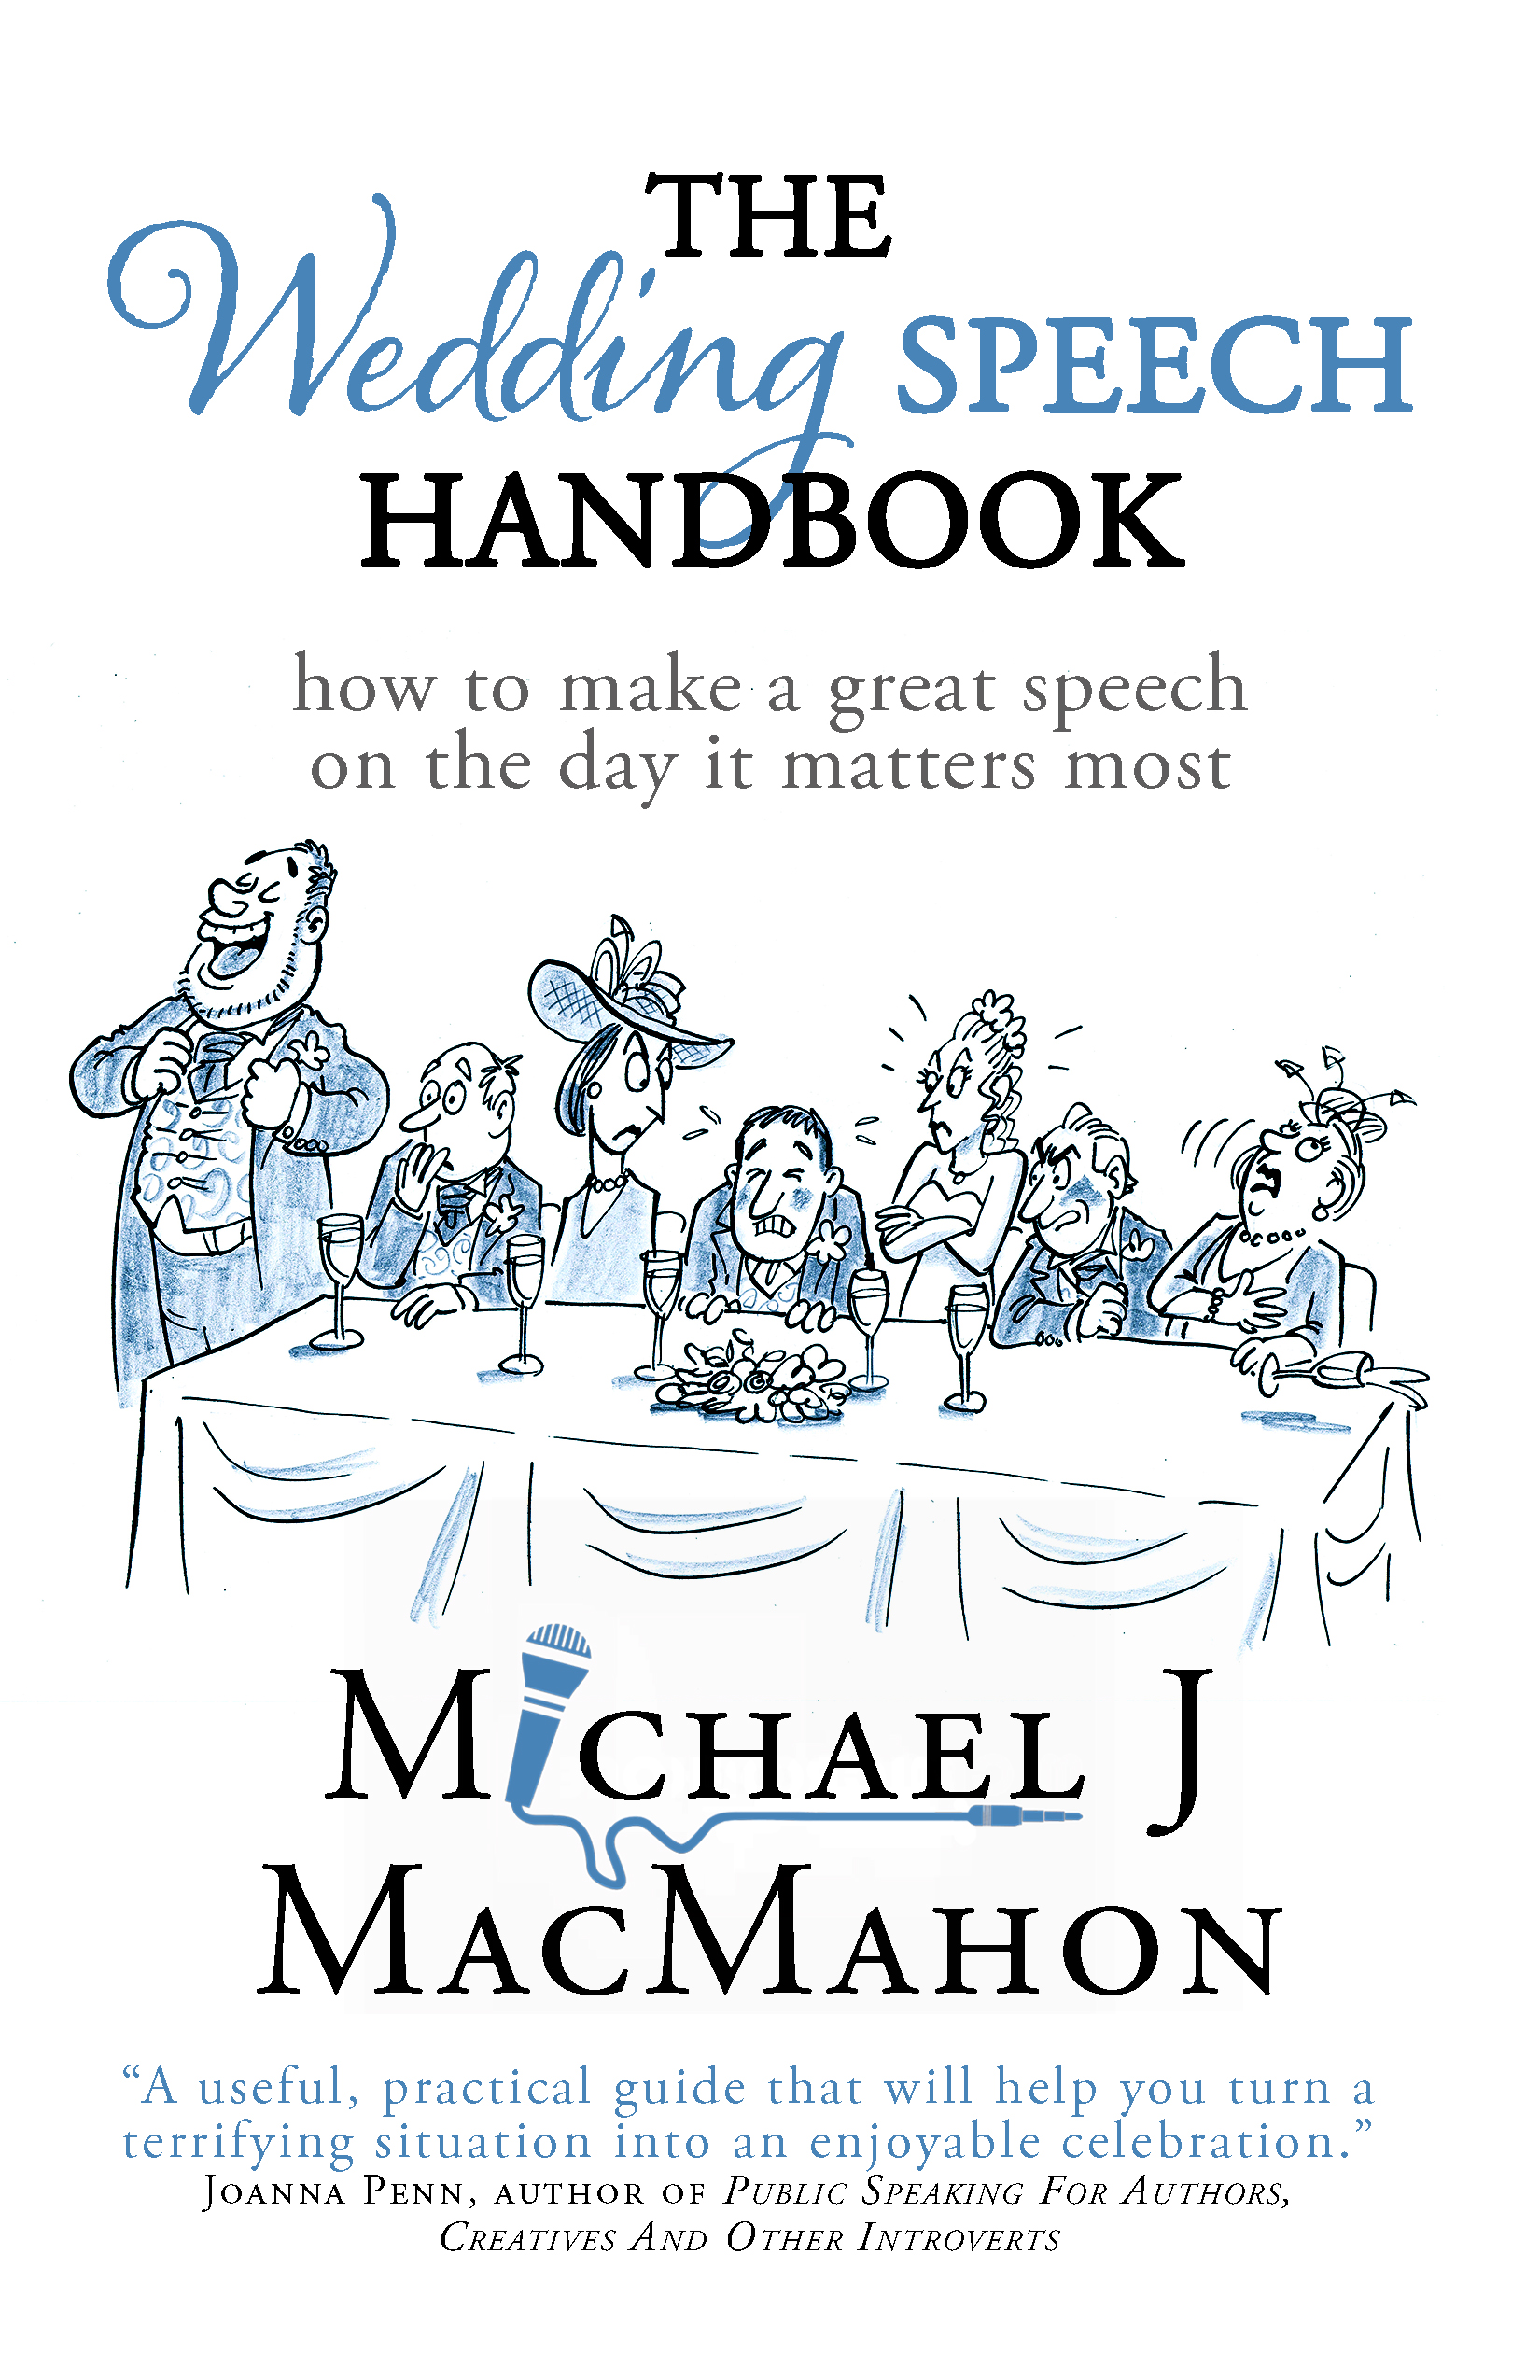 Purchase the handbook from Amazon